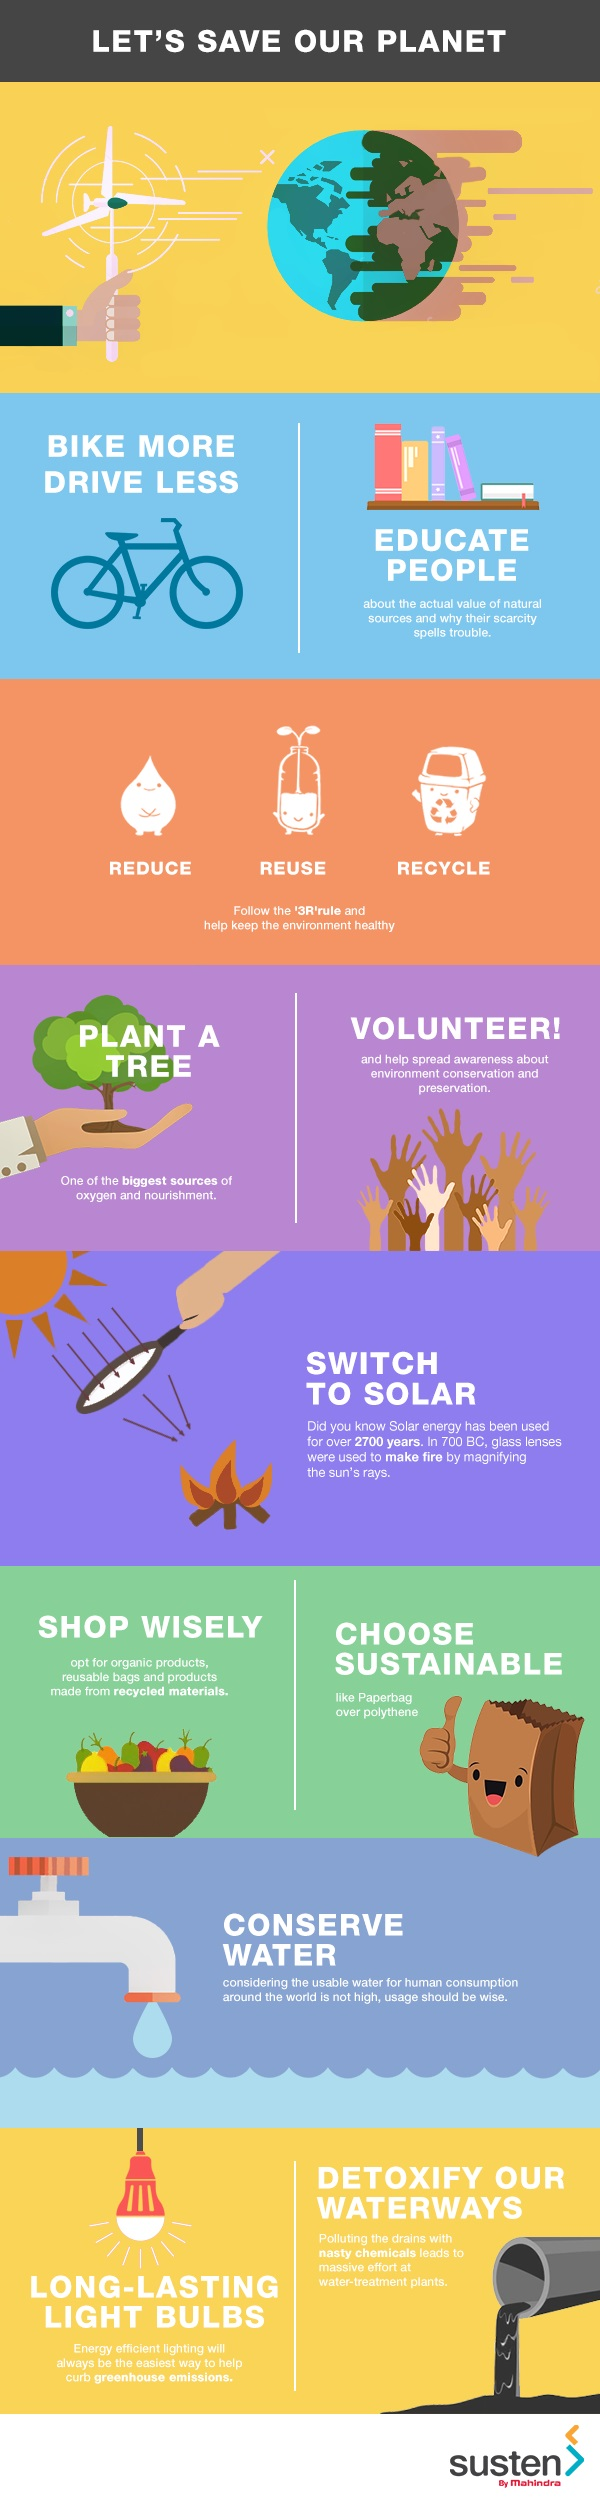 Earth Day is all about realising how precious our planet is for us and our future. Here are some tips to help keep this wonderland intact. #EarthDay